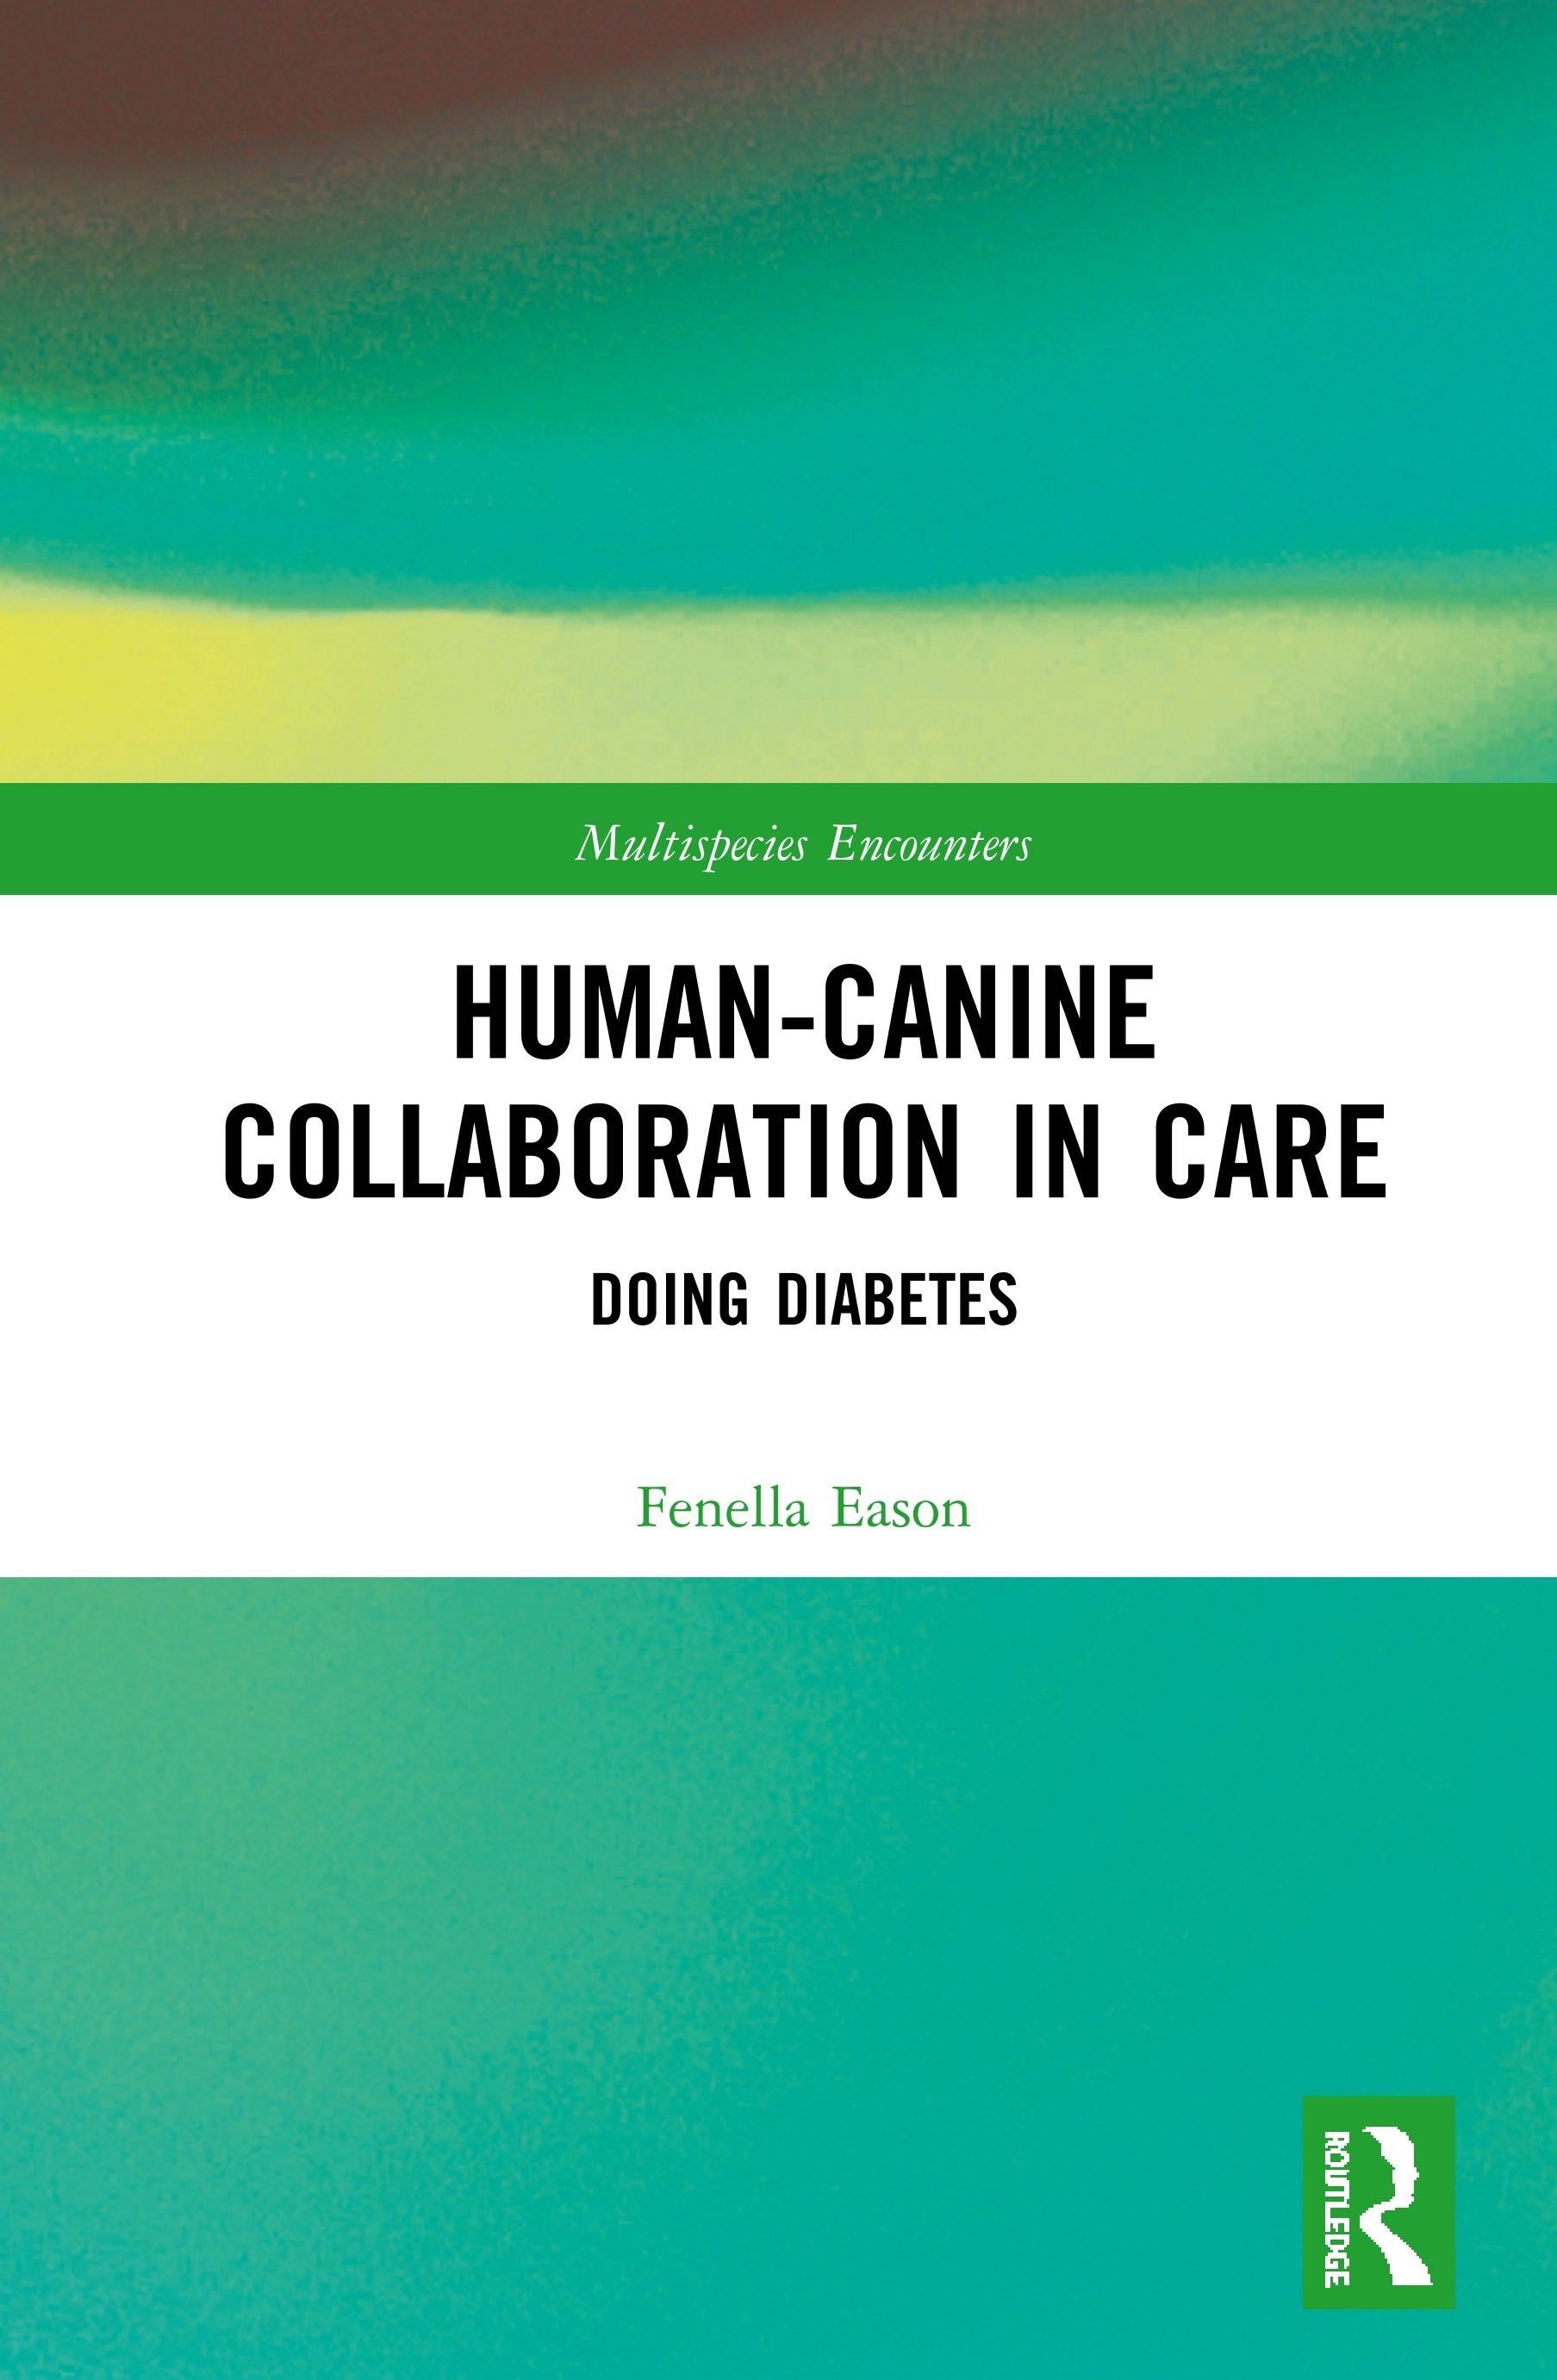 Human-Canine Collaboration in Care: Doing Diabetes book cover